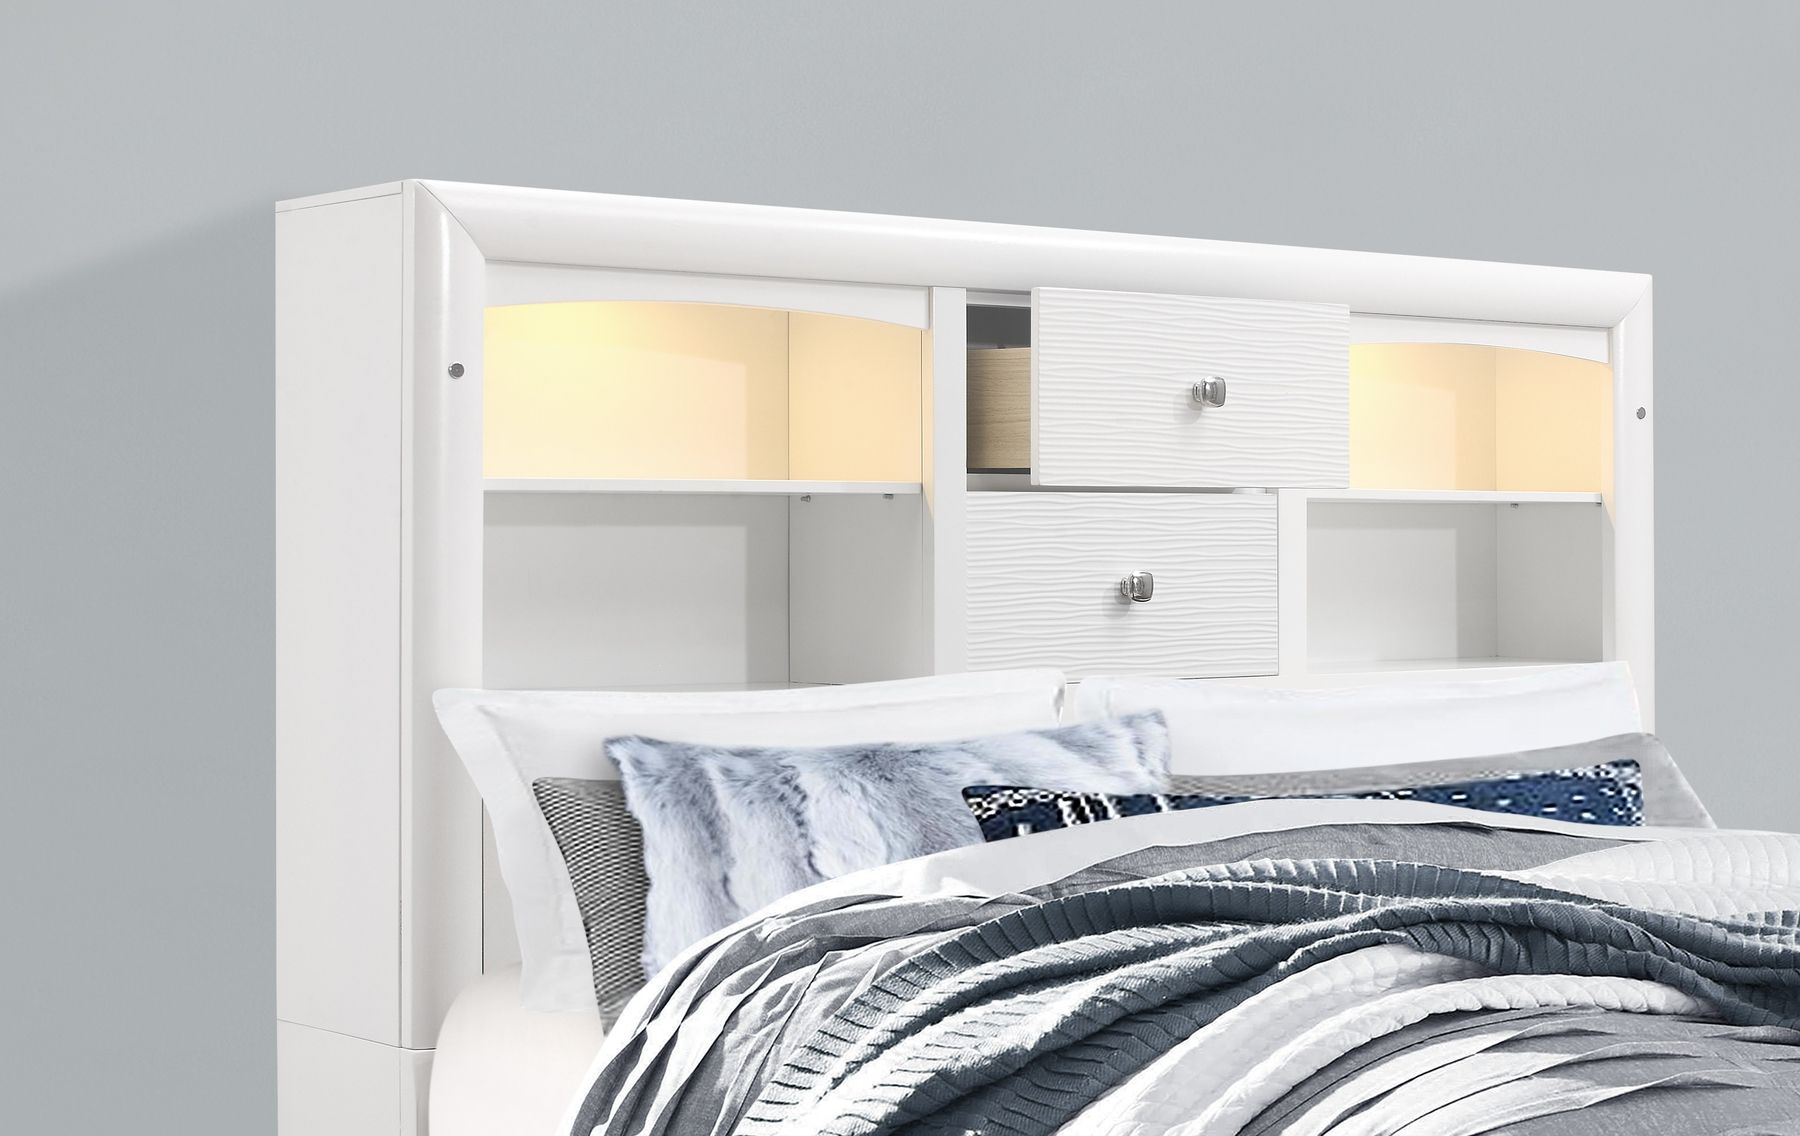 Jordyn (White) price for Full Size Bed, Introducing the Jordyn white storage bed in full size, designed with sturdy construction and contemporary styling. Features include Bookshelf style headboard with LED lighting, 4 spacious footboard drawers, and 2 spacious side drawers. Intricate features include a bar style drawer handles, bracket style feet, and textured drawer fronts which together create this versatile bed fit for any decor style. Choose the Jordyn white bed to upgrade your bedroom inst